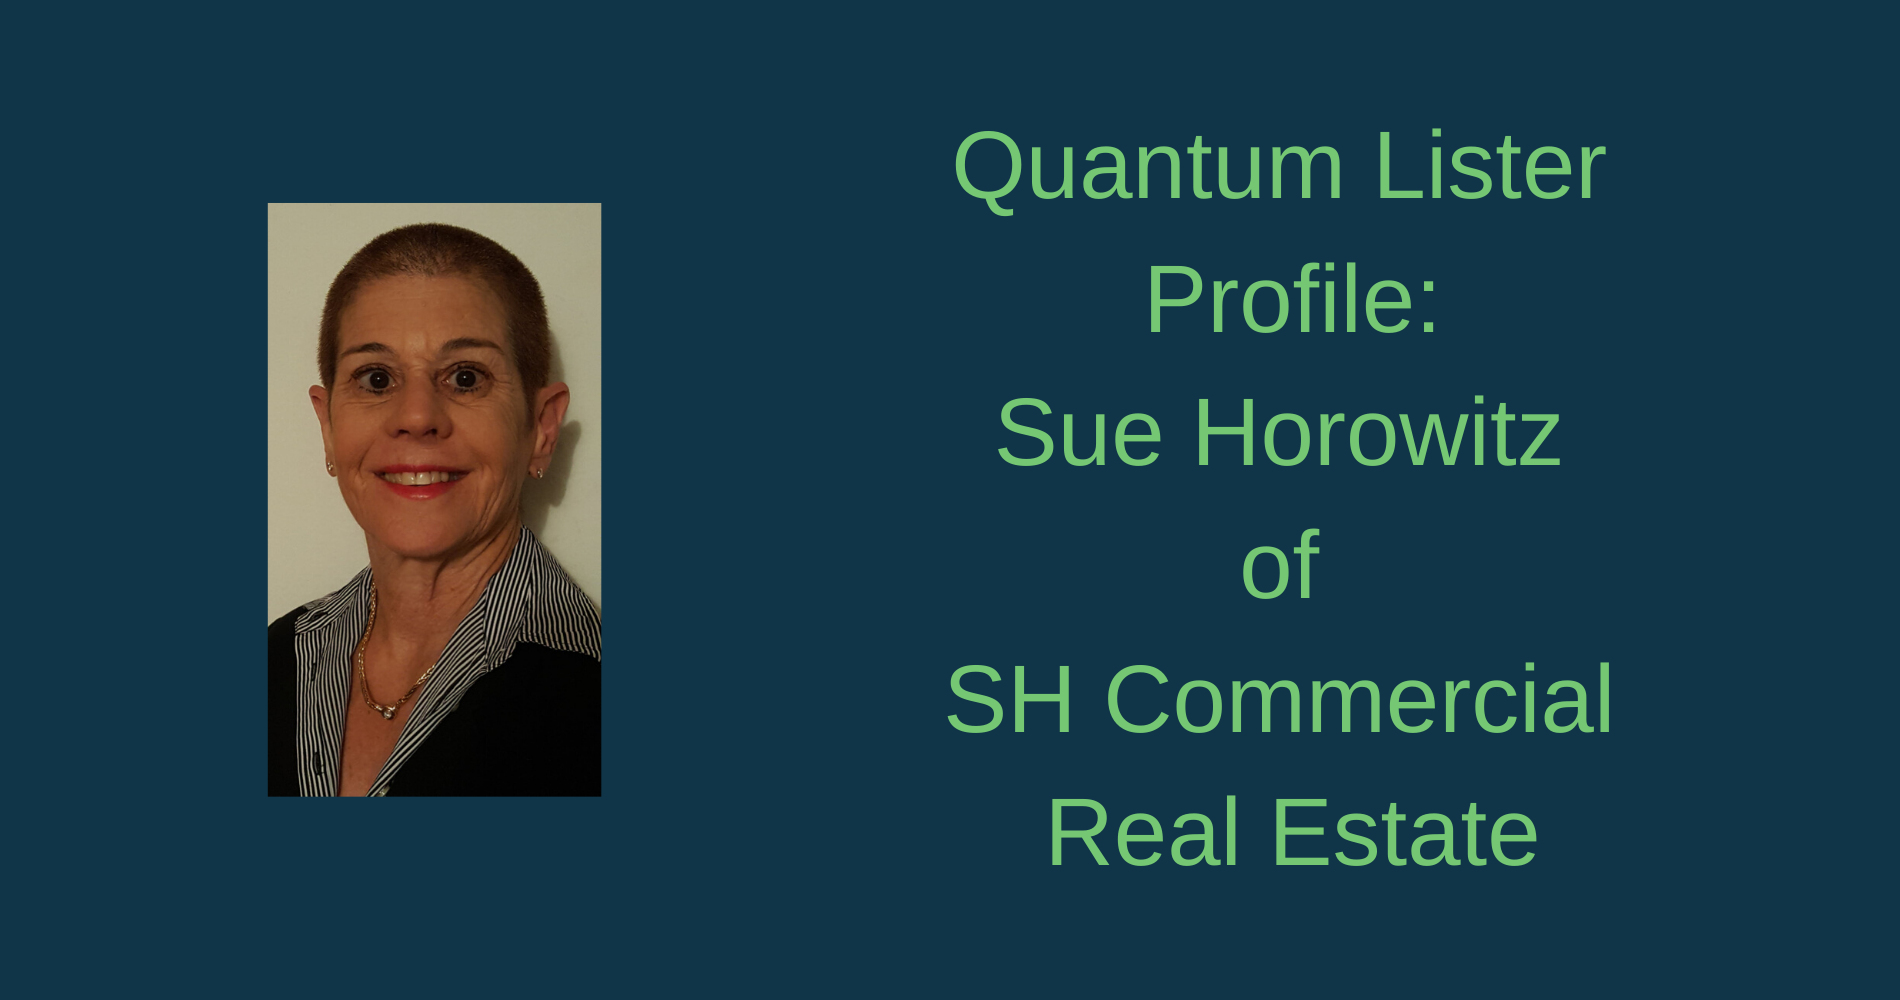 Quantum Lister: Sue Horowitz of SH Commercial Real Estate